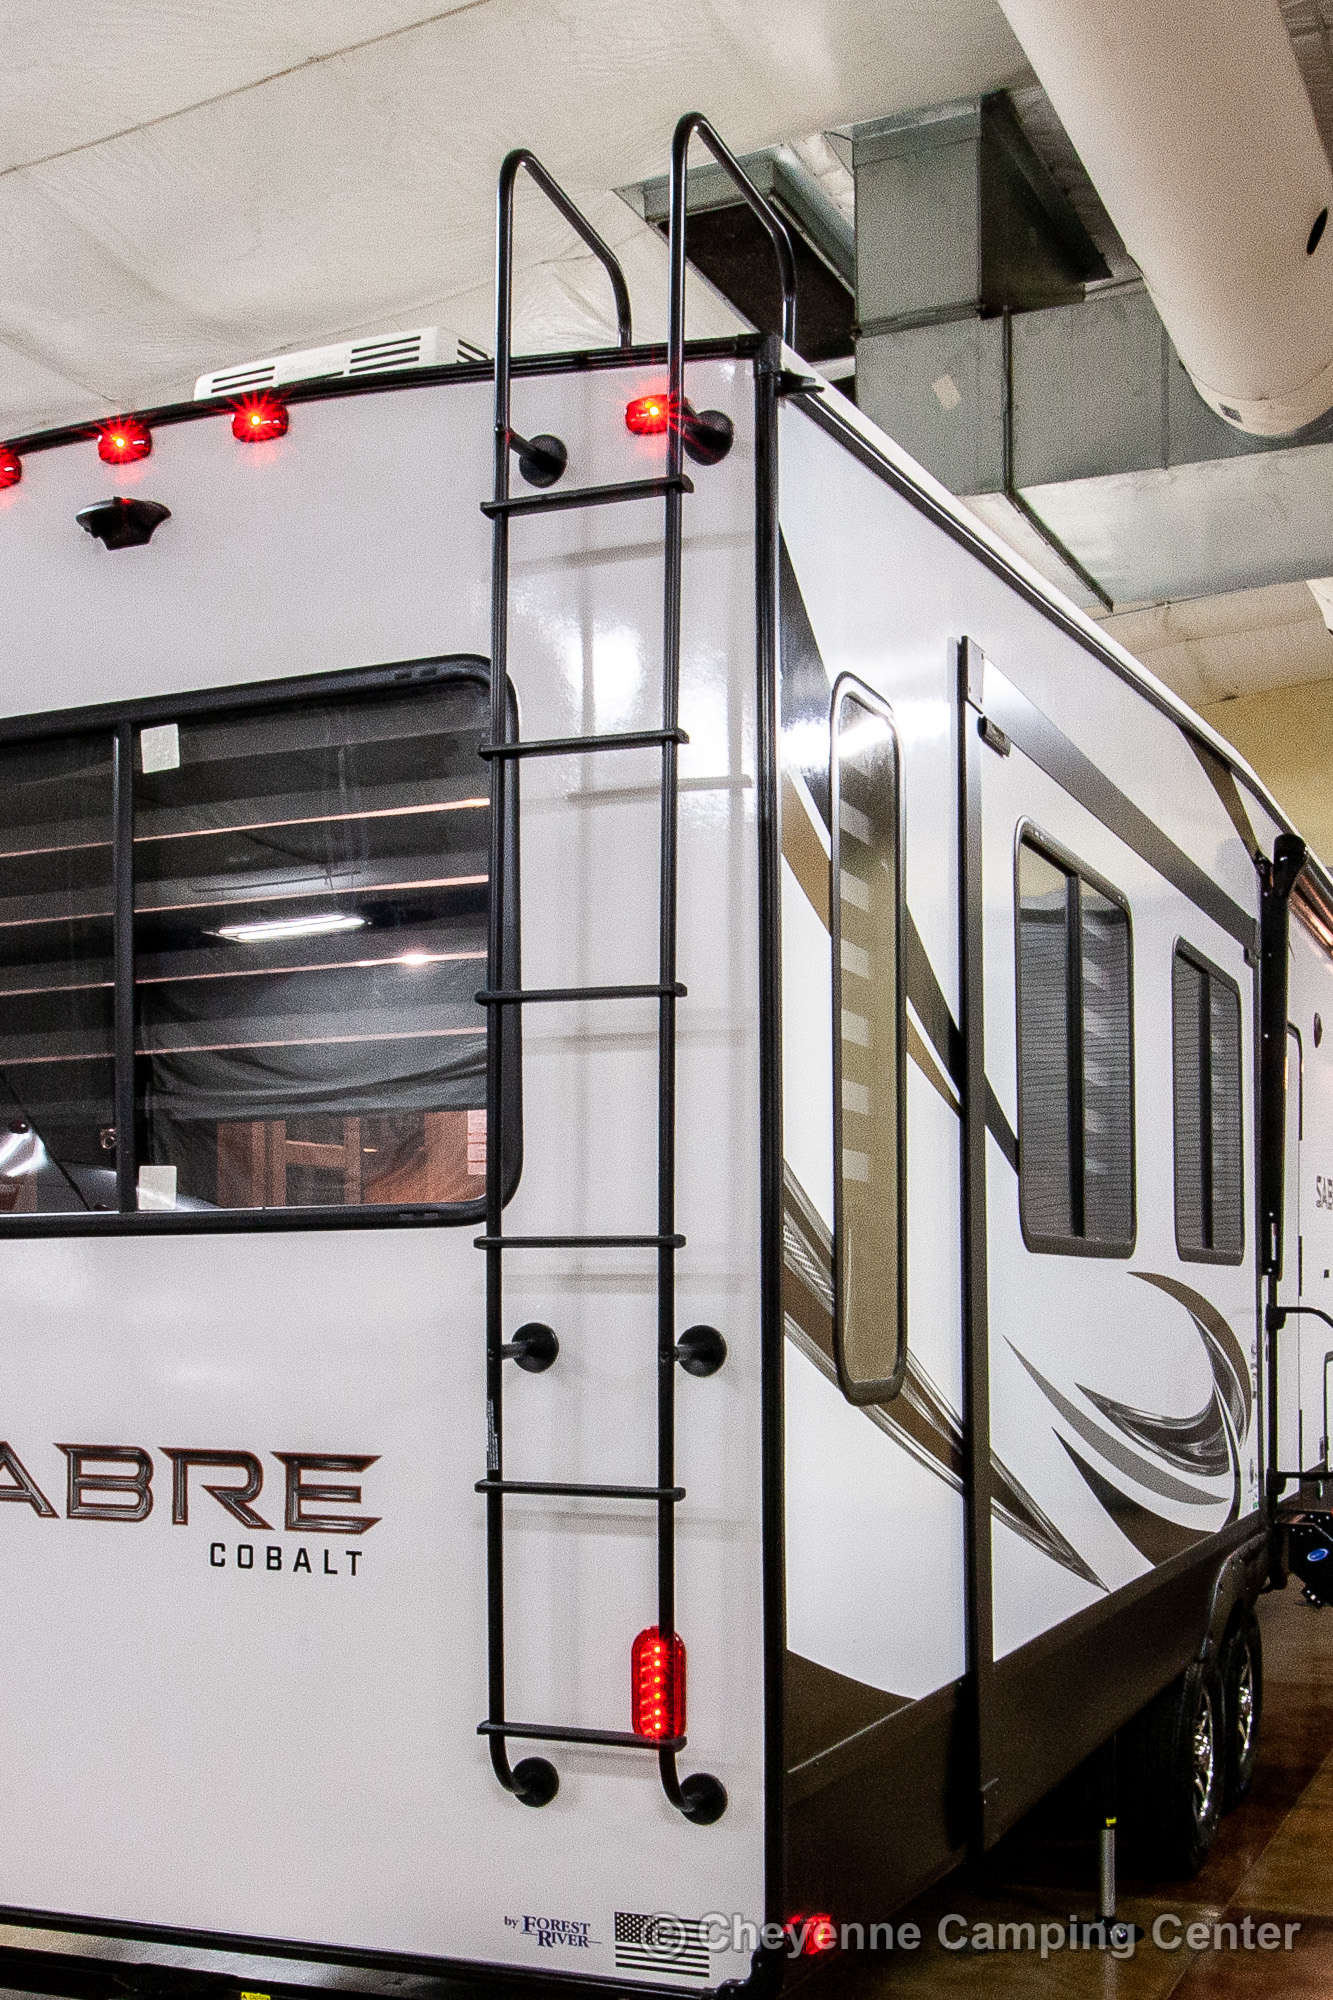 2021 Forest River Sabre Cobalt Edition 36BHQ Bunkhouse Fifth Wheel Exterior Image